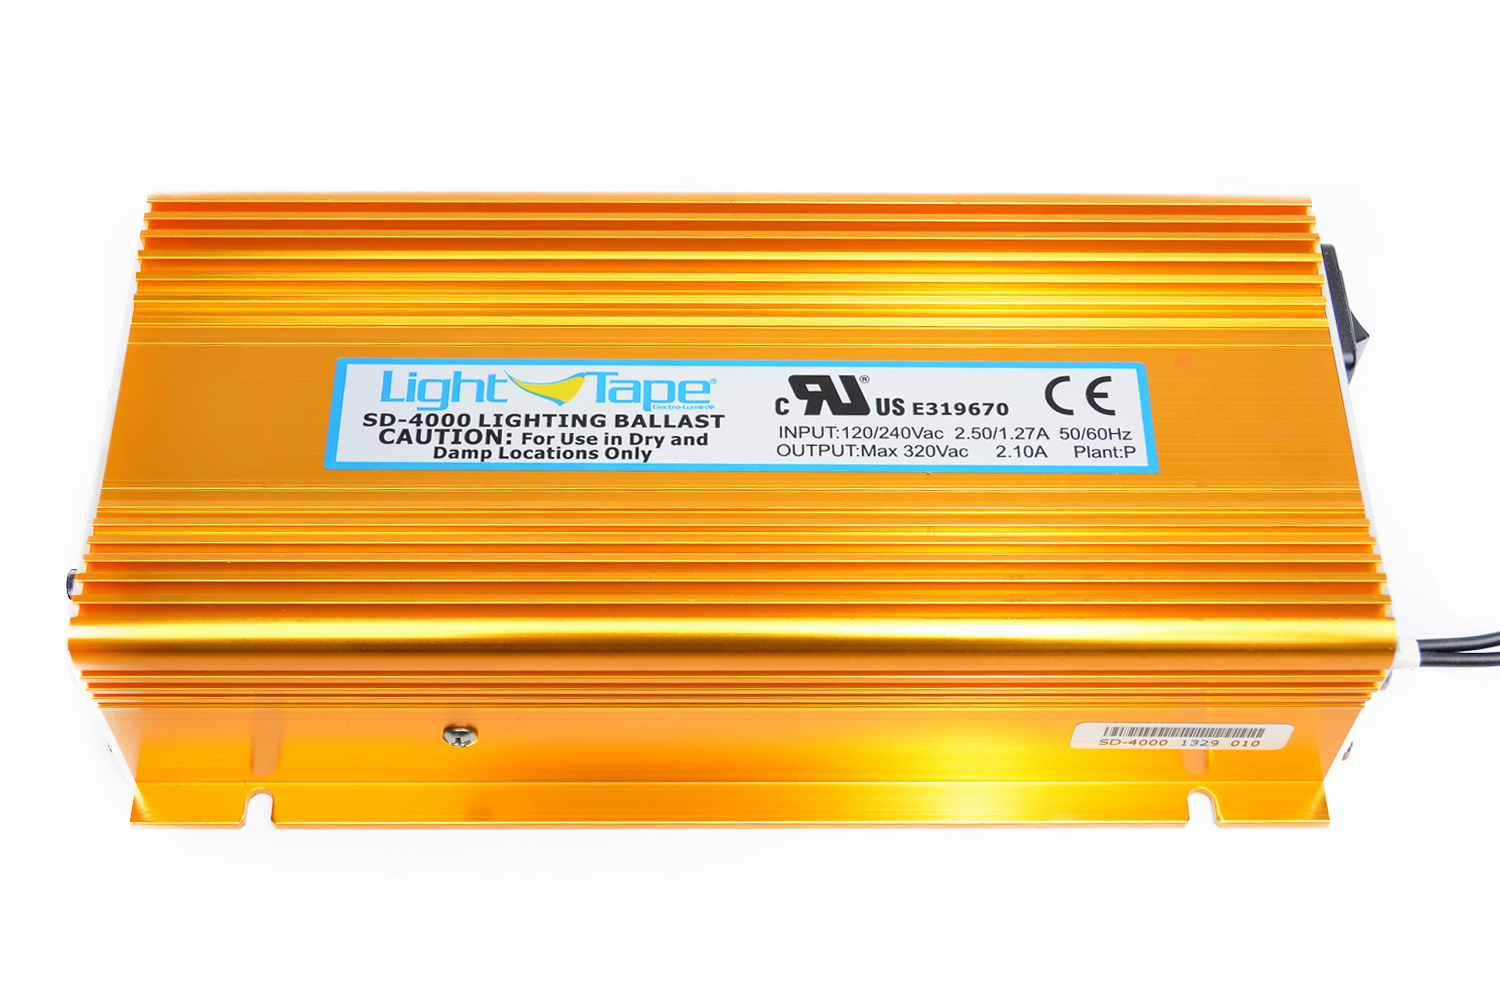 Model SD-4000  Illuminated Area:2500-6500 sq. in. Input Current:420-3300 mA Input Voltage: 120 or 240 VAC Input Frequency: 50/60 Hz Output Voltage: 200-300 V Output Frequency: 500-800 Hz